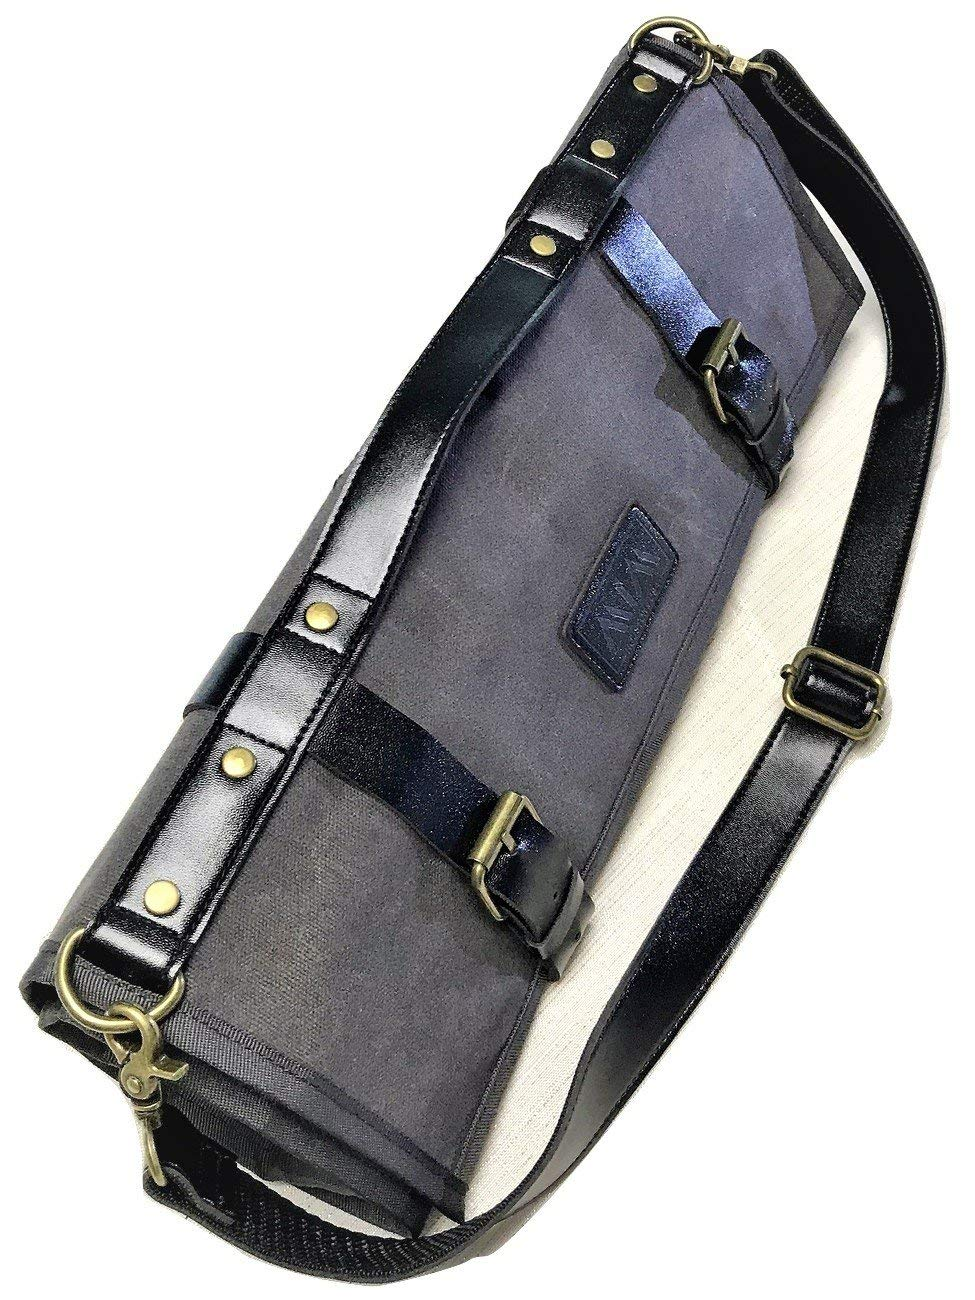 72d2267978 Get Quotations · Chef Knife Roll Knife Bag for Chefs Waxed Canvas W  PU  Leather Adjustable Shoulder Strap